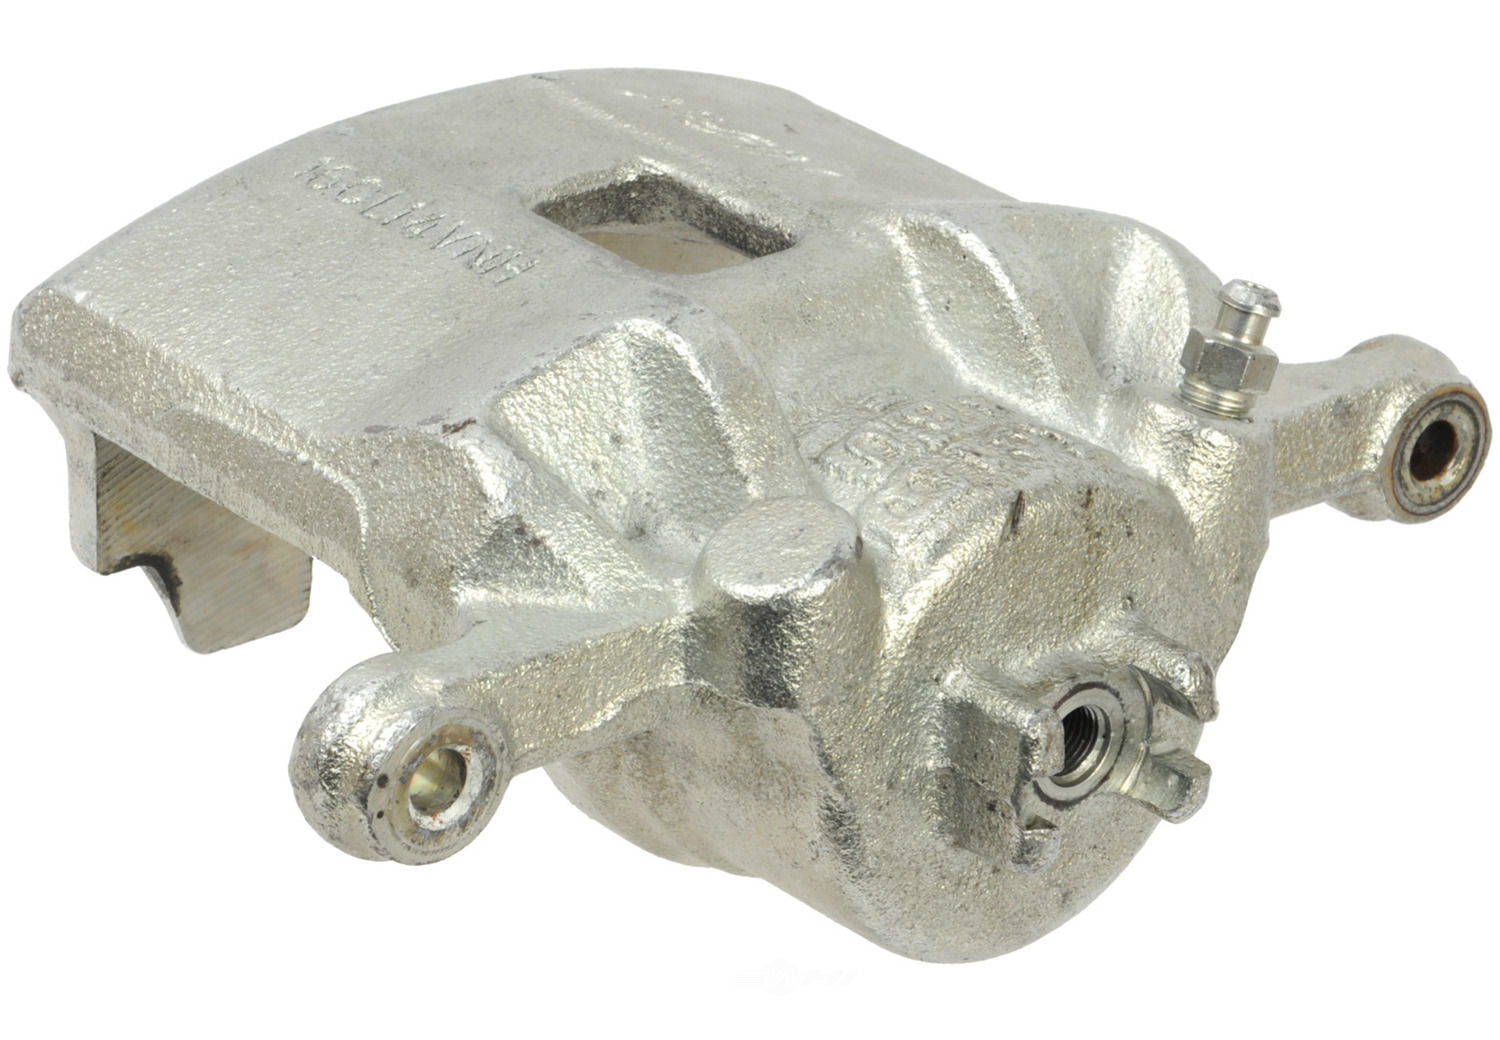 CARDONE / A-1 CARDONE - Reman A-1 Cardone Friction Choice Caliper - A1C 19-6039